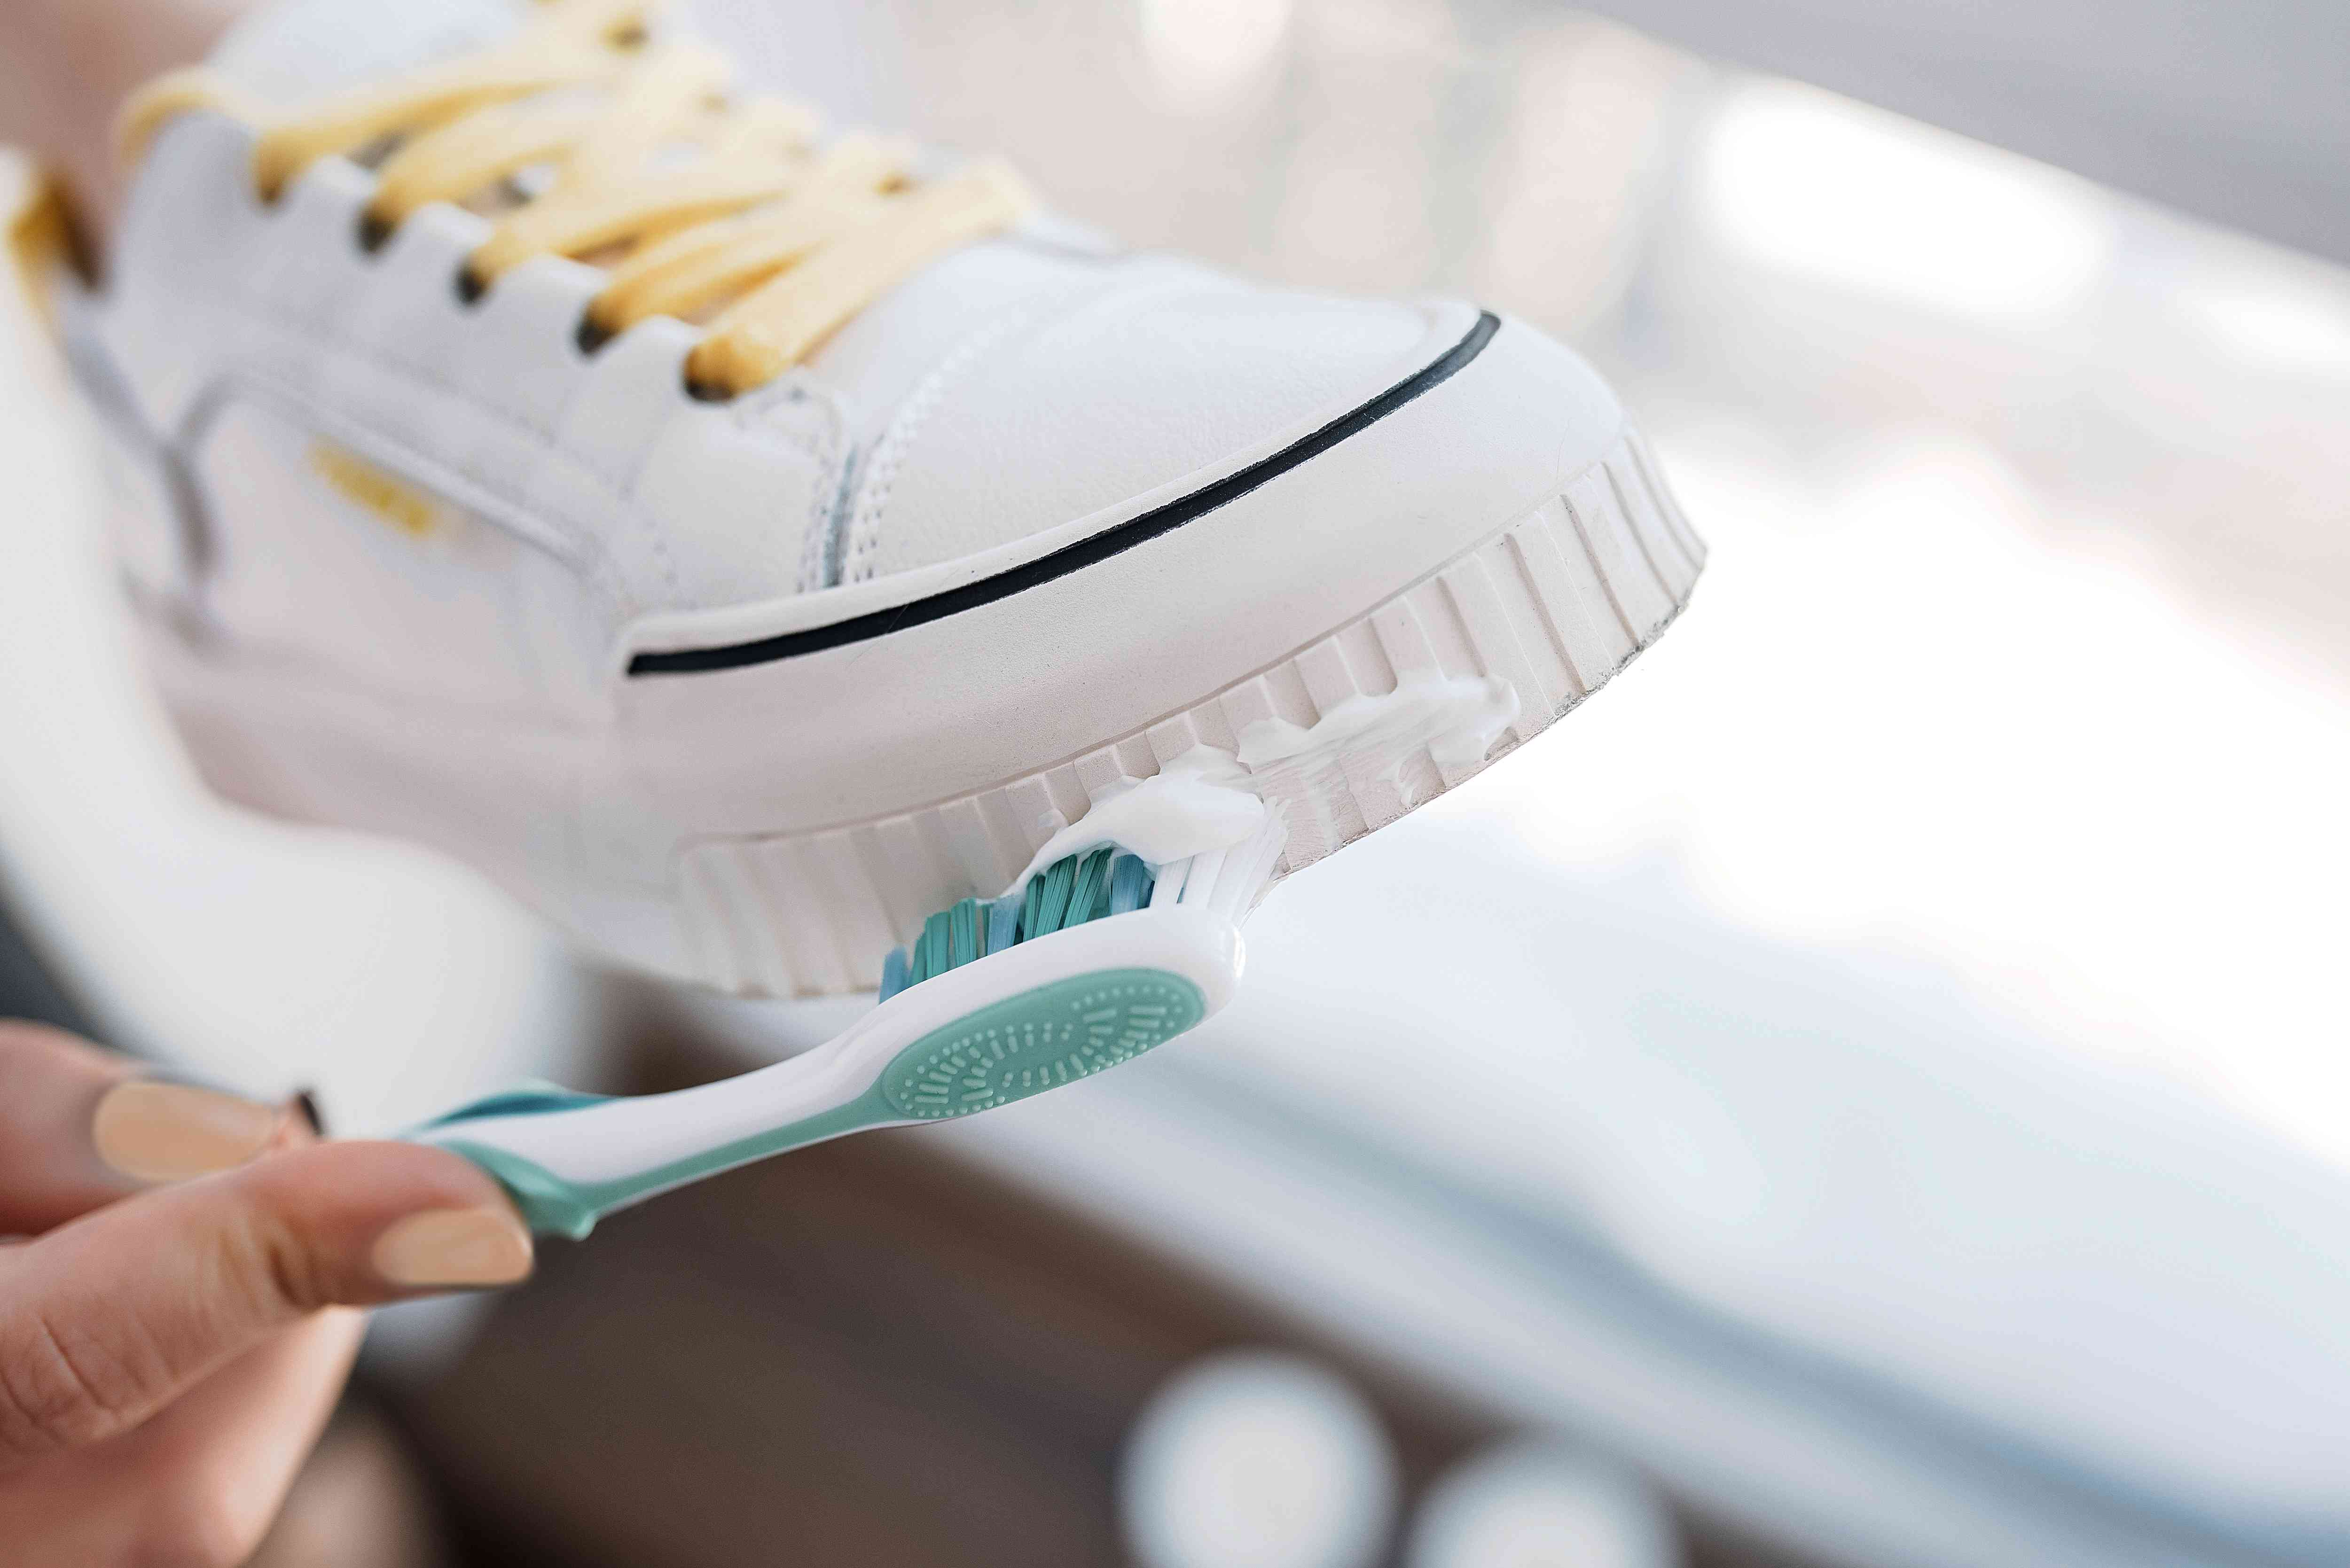 using toothpaste to clean the sole of a sneaker